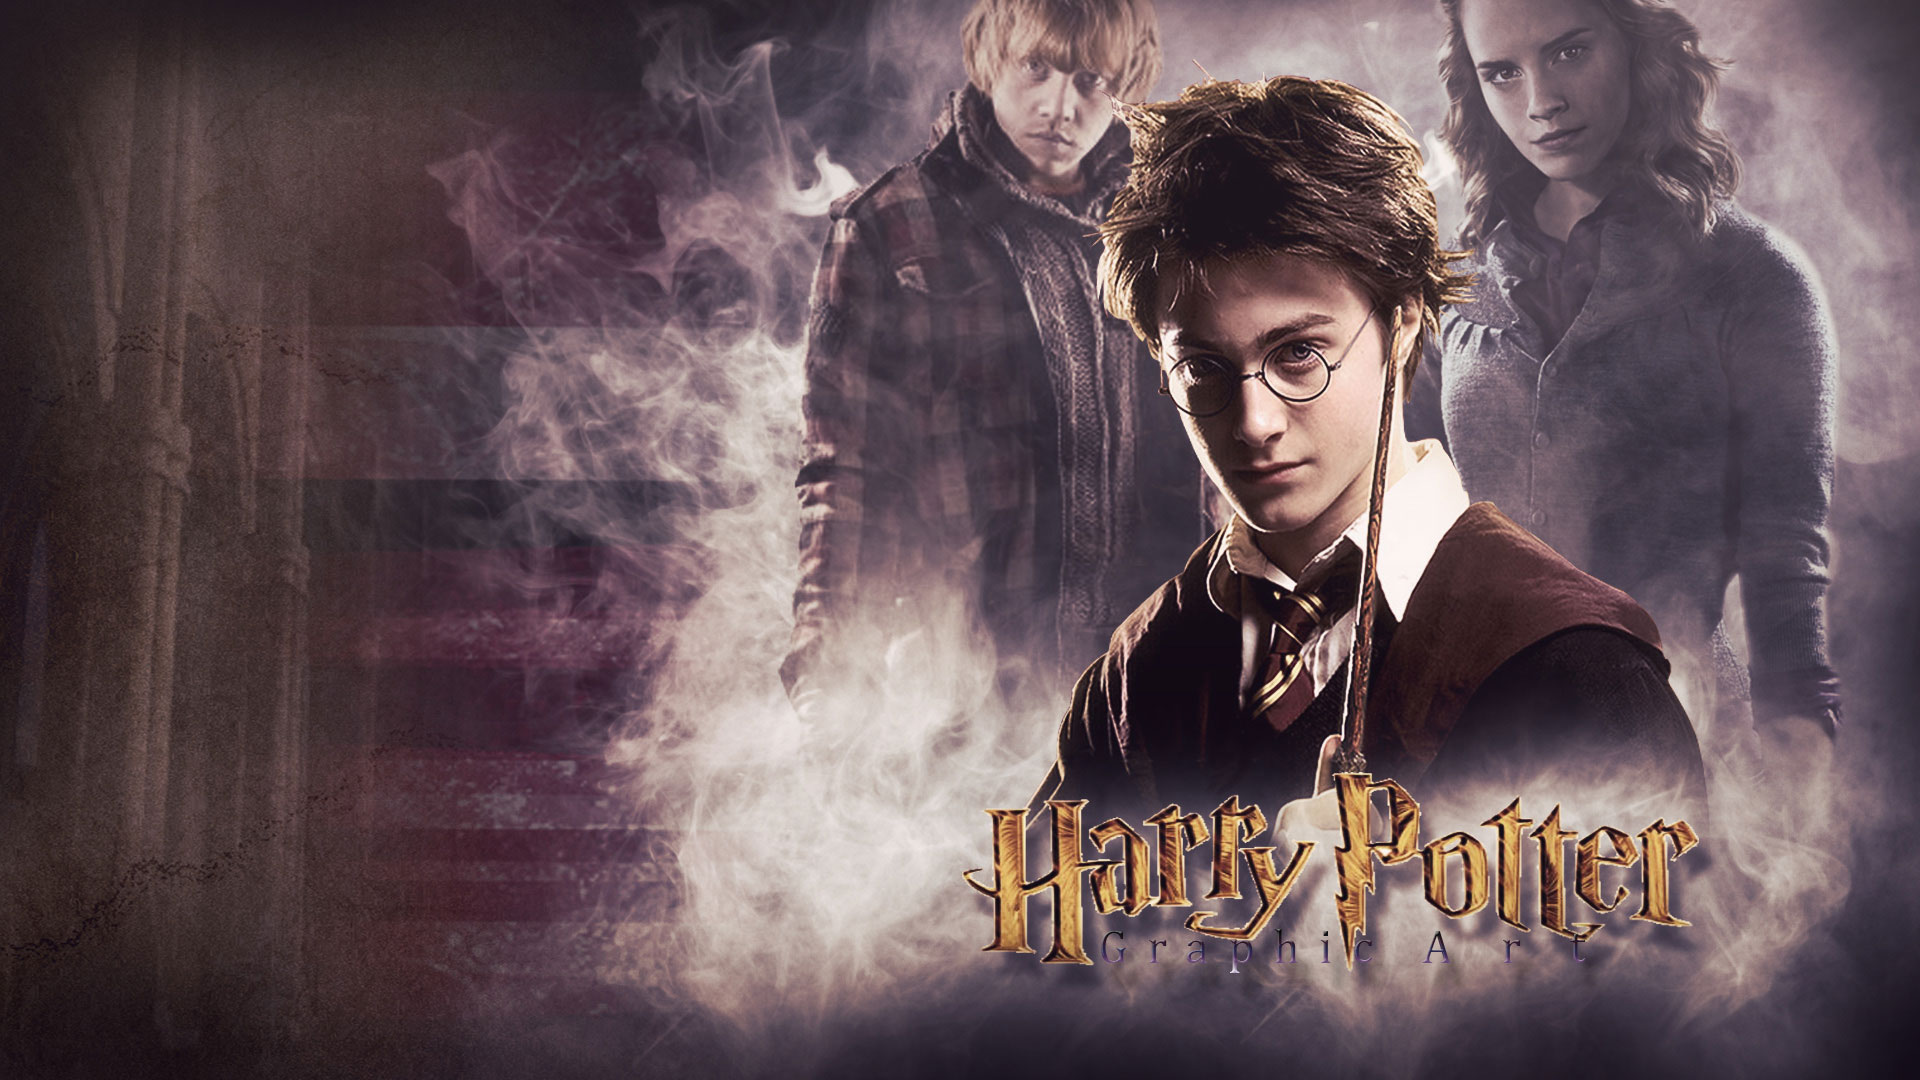 Cool Wallpaper Harry Potter Facebook - harry-potter-9  Image_487859.jpg